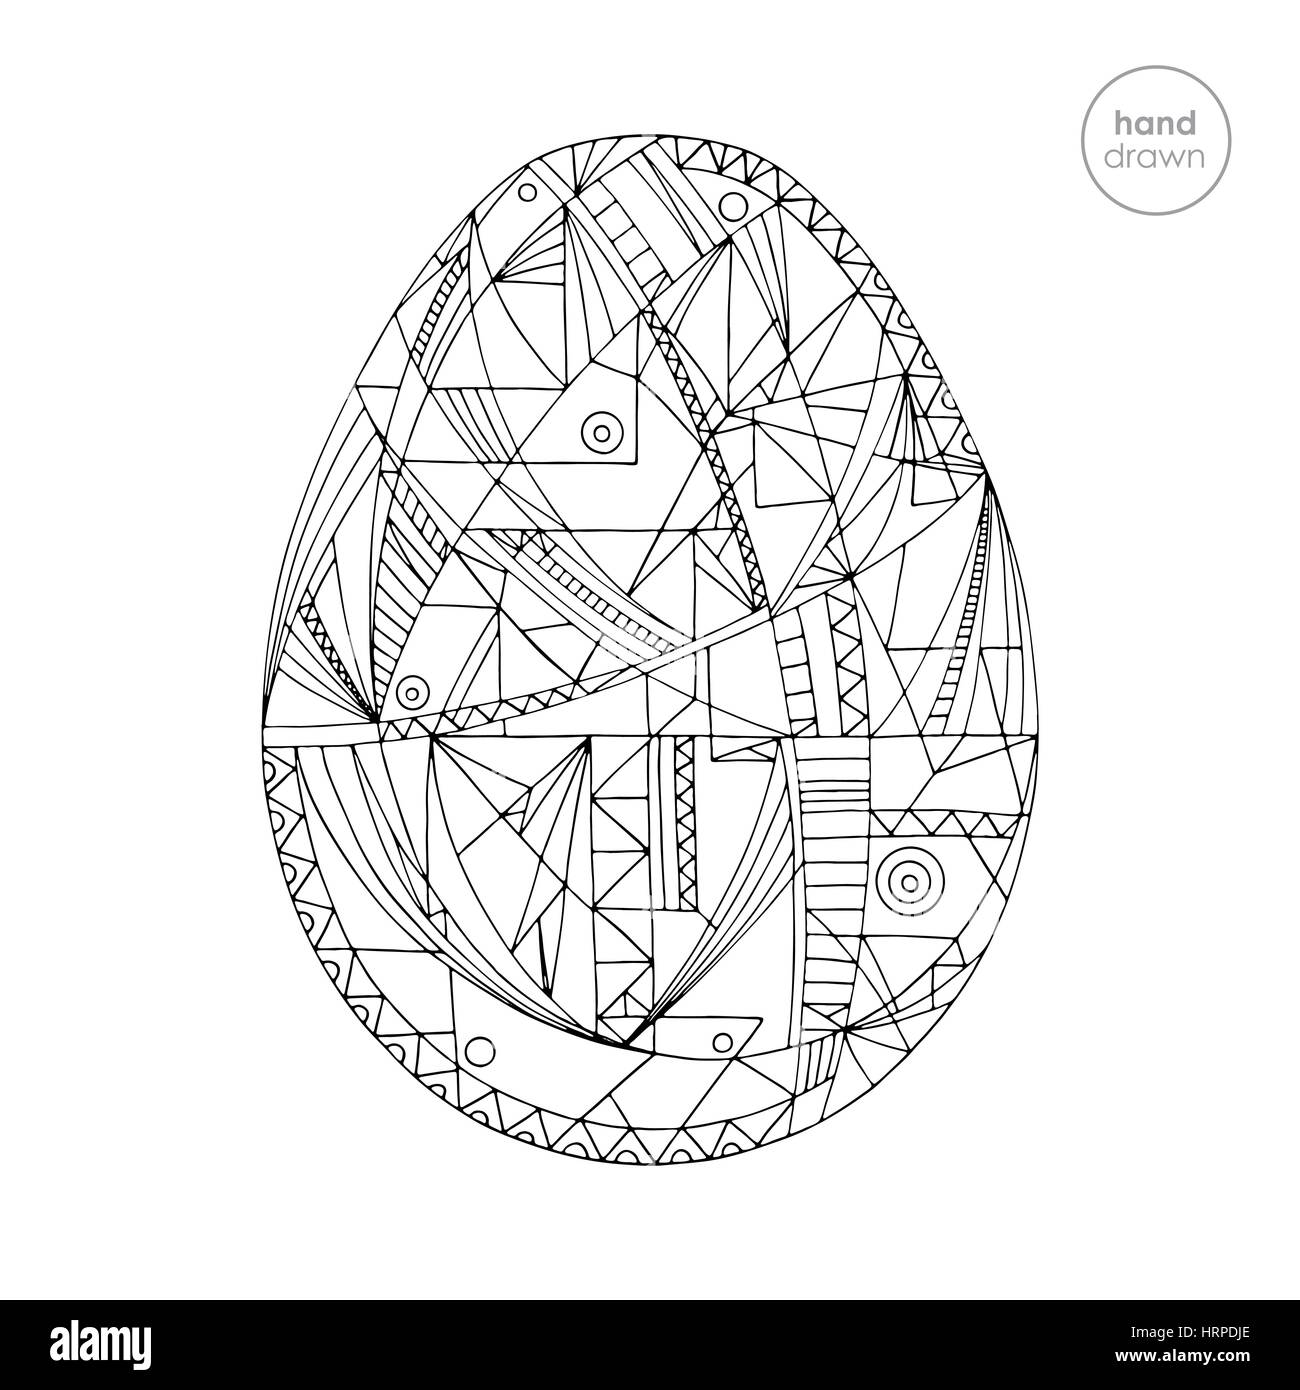 Coloring Page Stockfotos & Coloring Page Bilder - Alamy